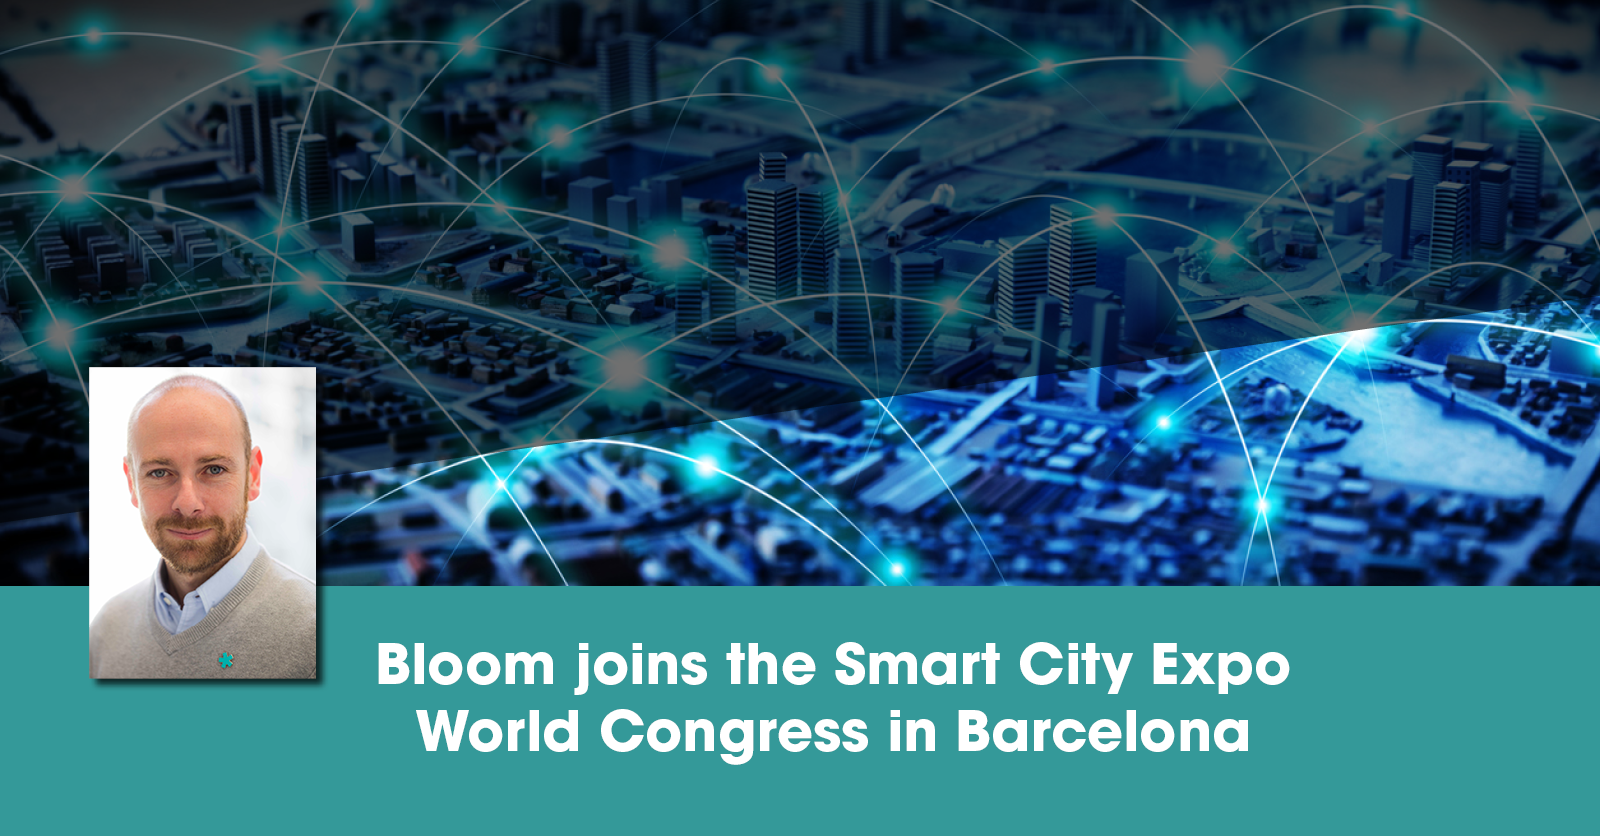 Bloom joins the Smart City Expo World Congress in Barcelona